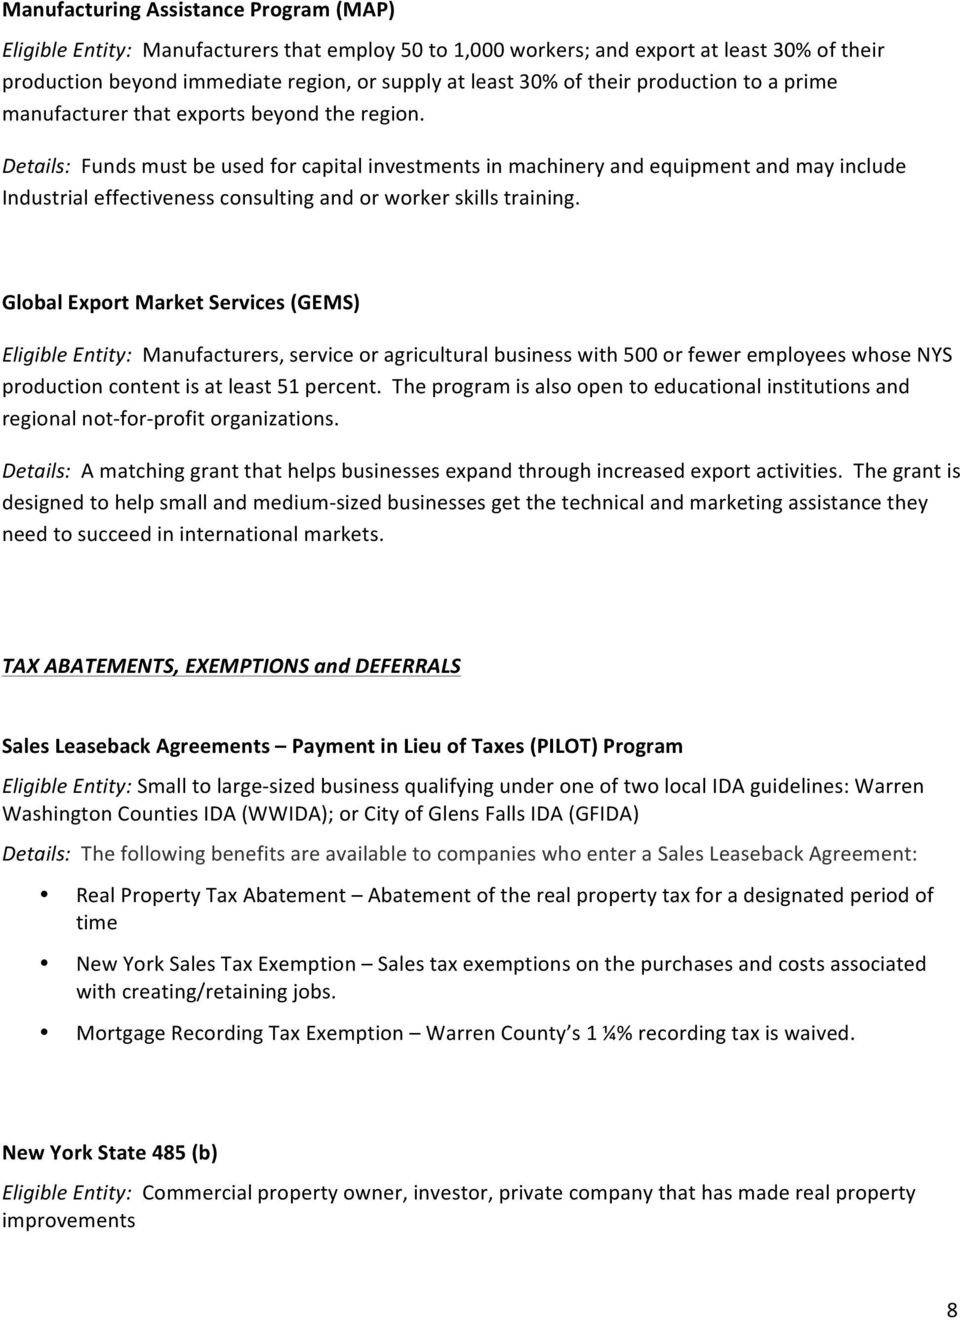 New York and Warren County Incentives & Financing Programs - PDF